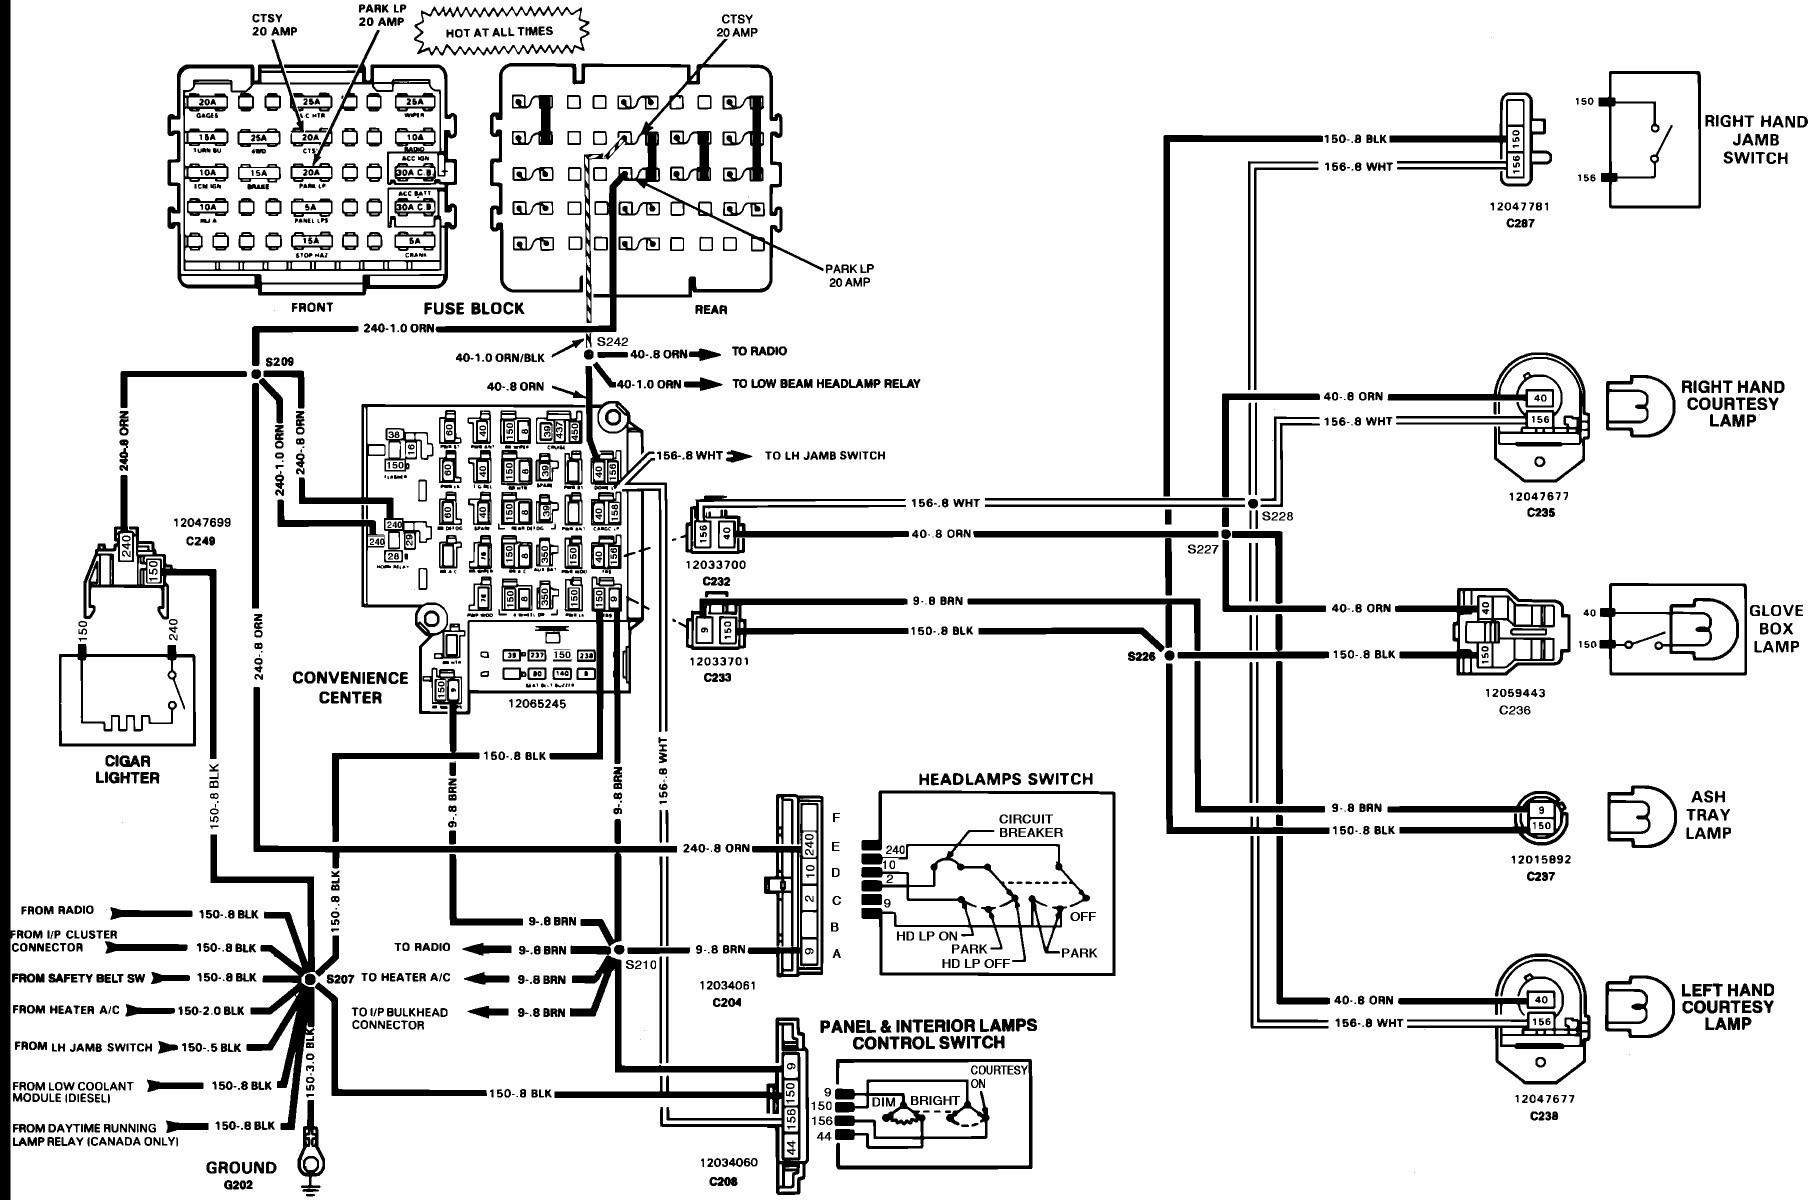 Pleasant Mopar Alternator Wiring Diagram Wiring Library Wiring Cloud Usnesfoxcilixyz